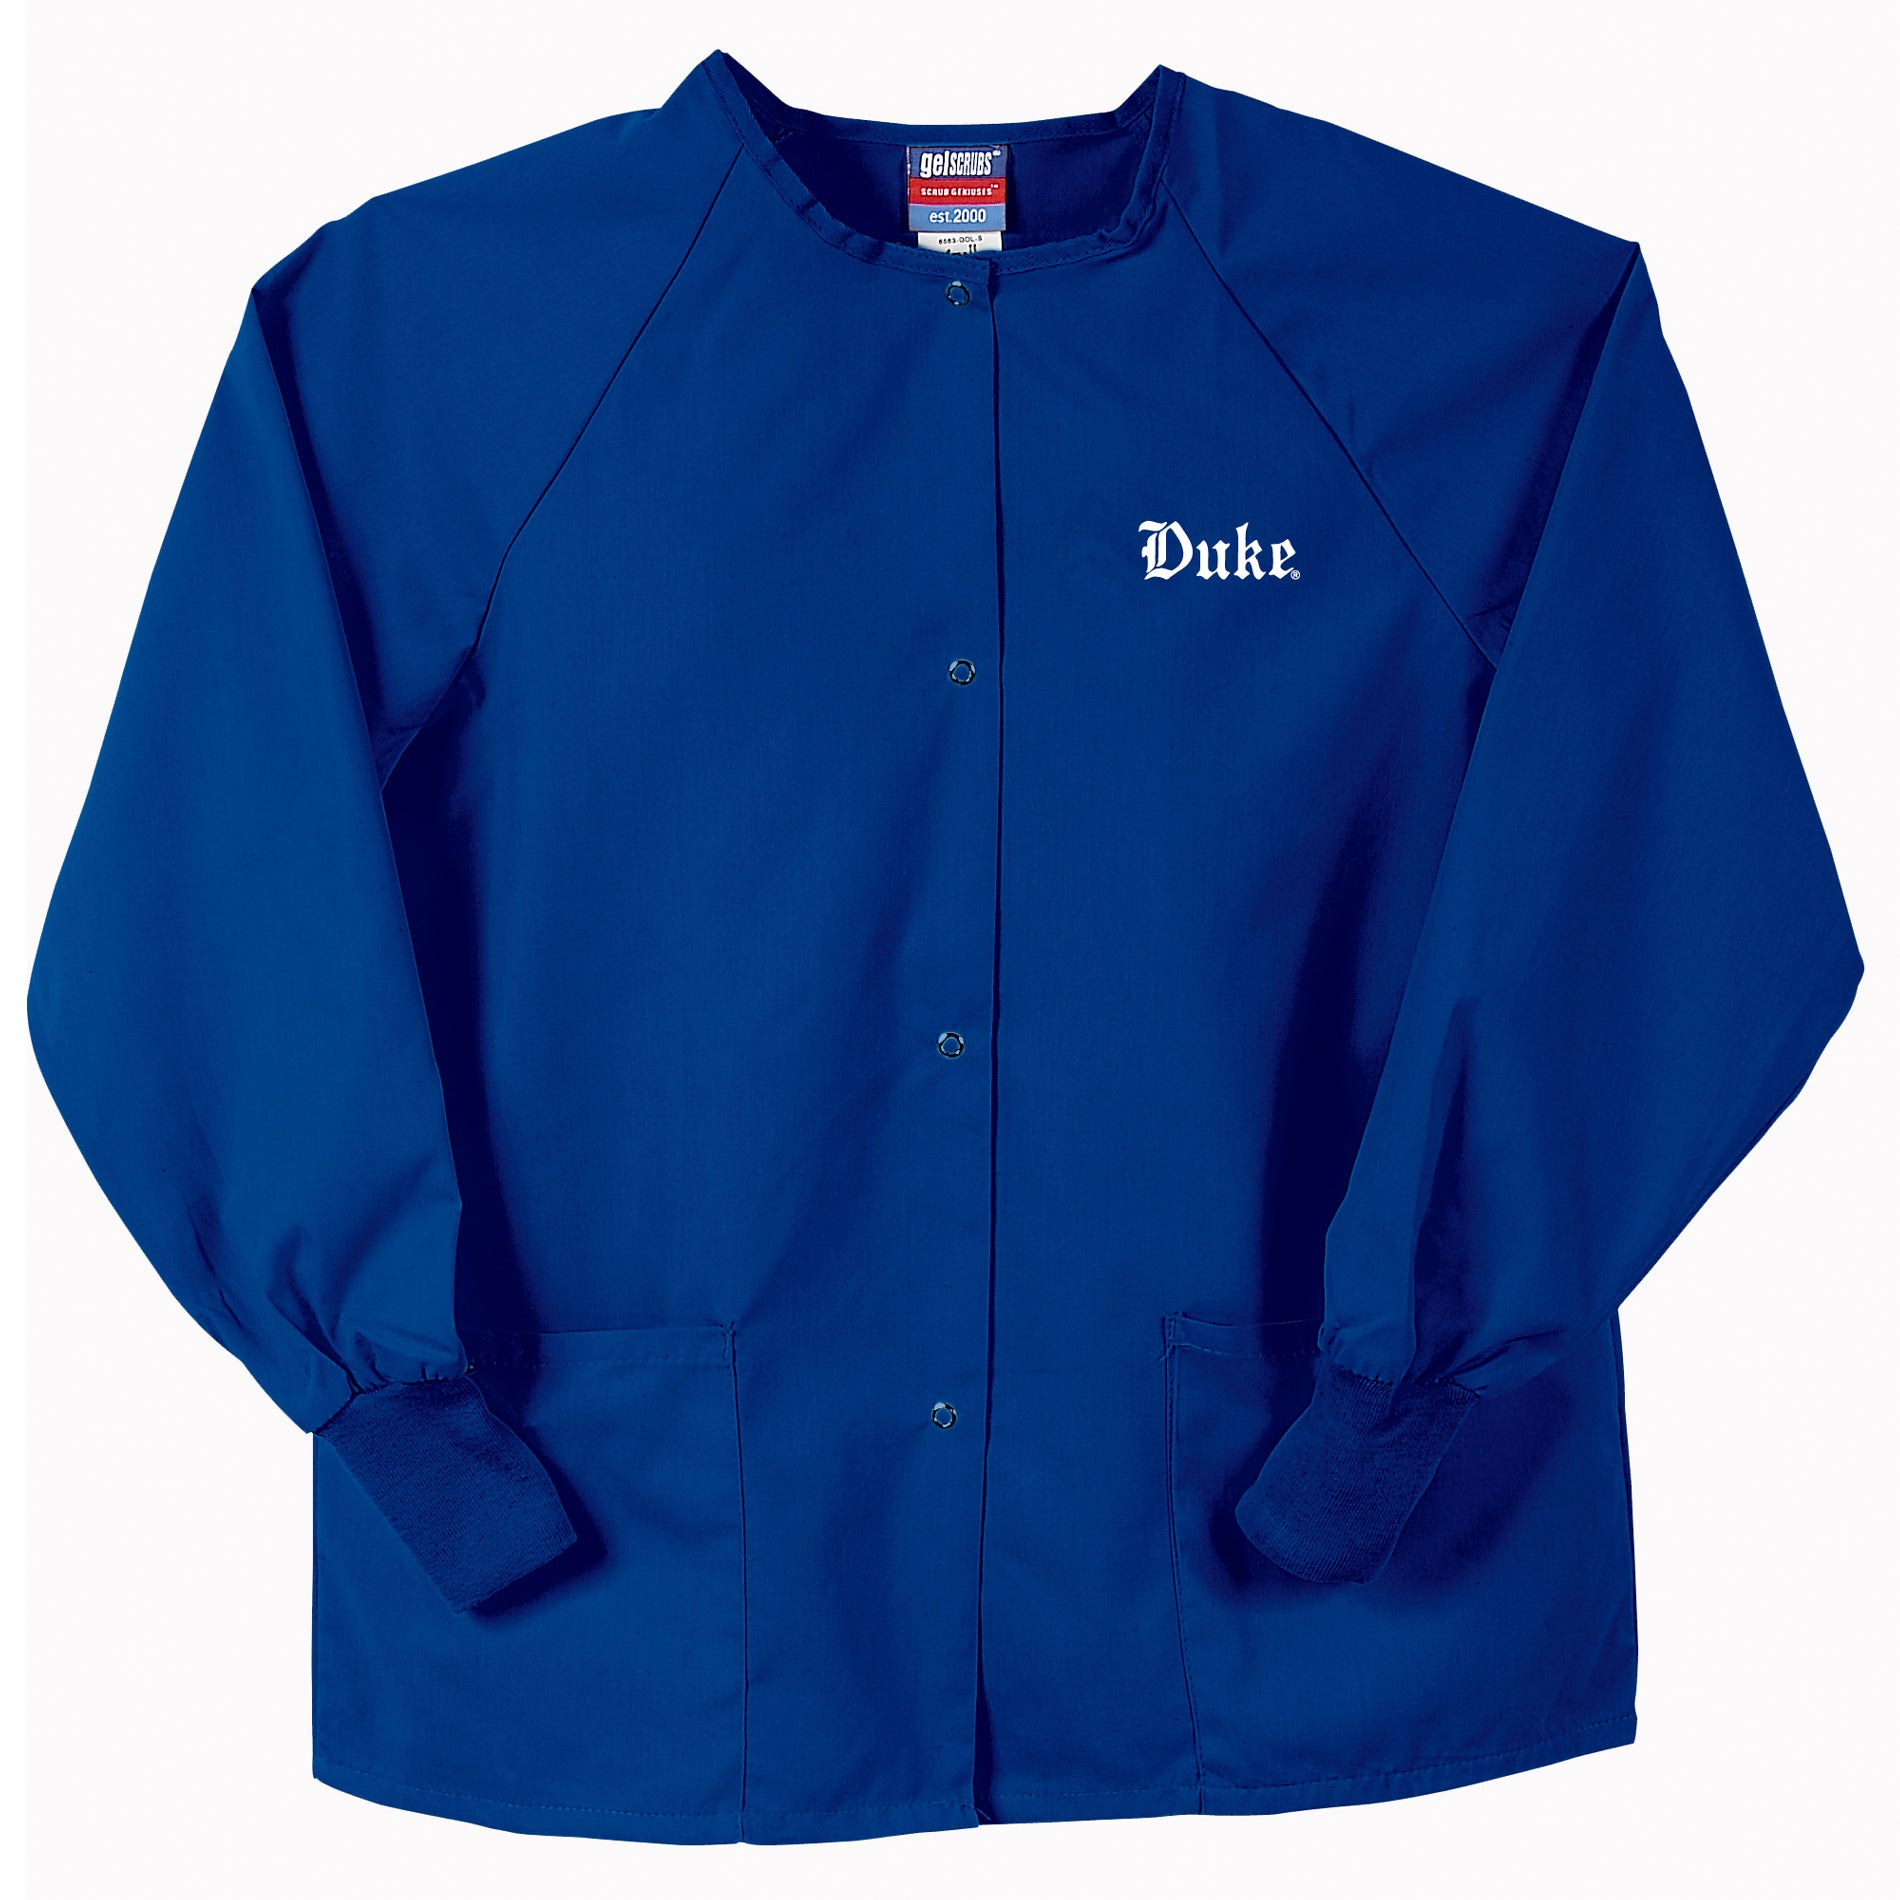 Gelscrubs Unisex Royal Blue NCAA Duke Blue Devils Nurse Jacket